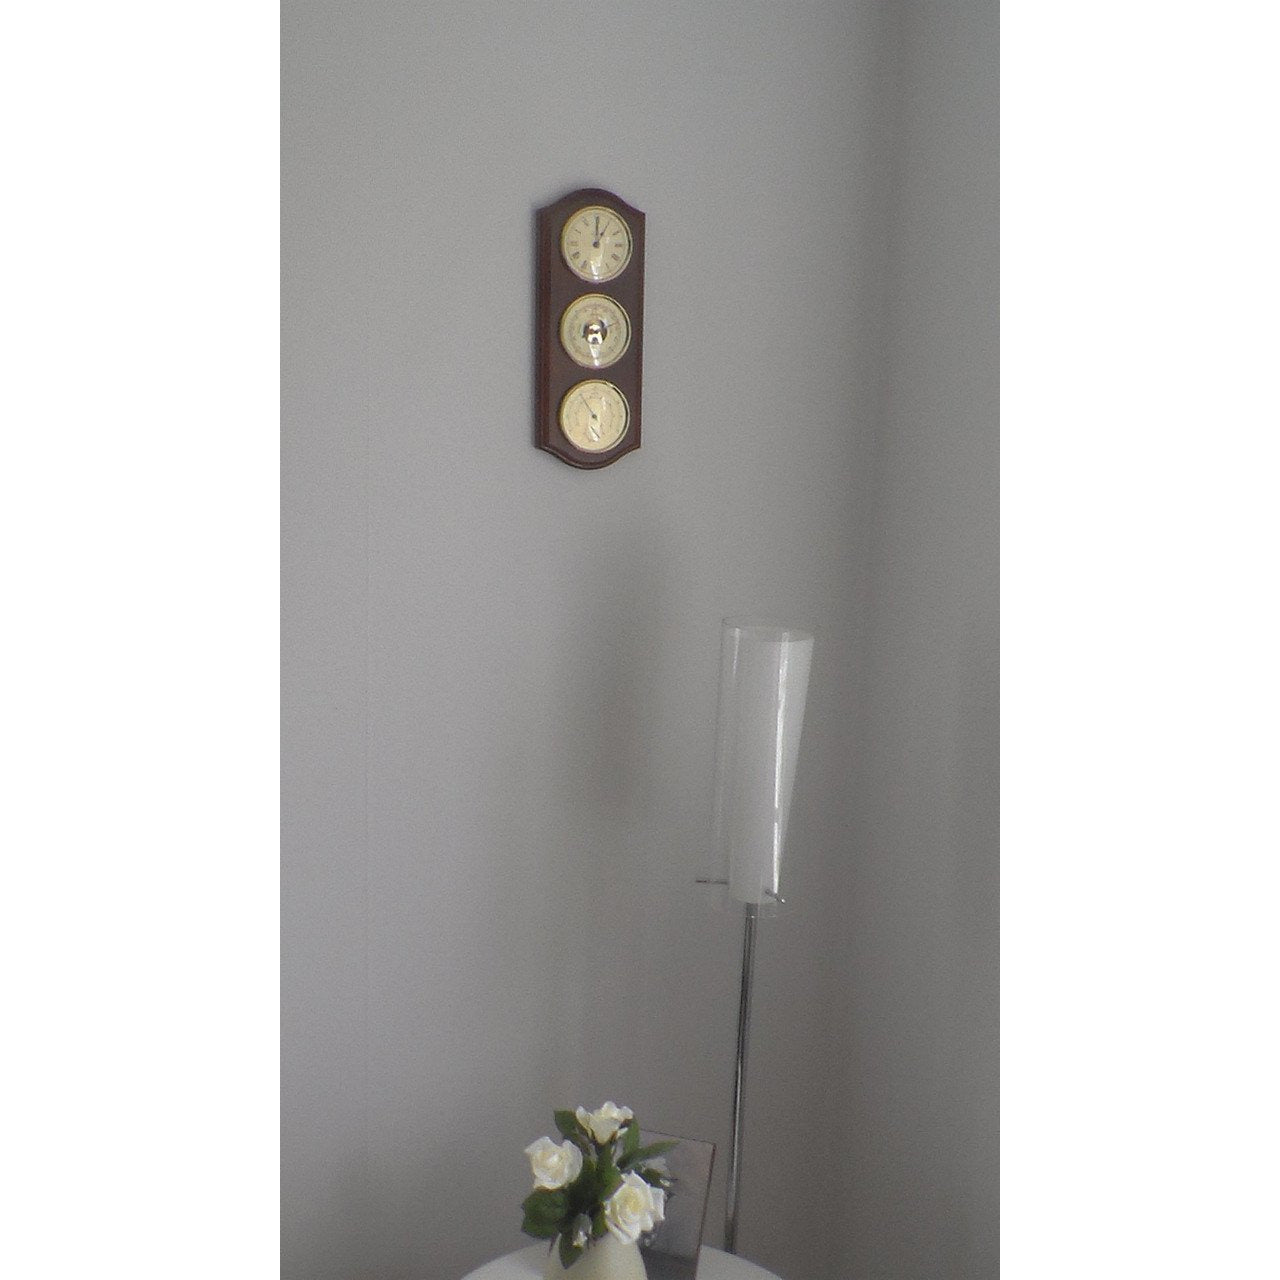 Wall Mounted Mahogany and Brass Weatherstation with Clock 9176U-22